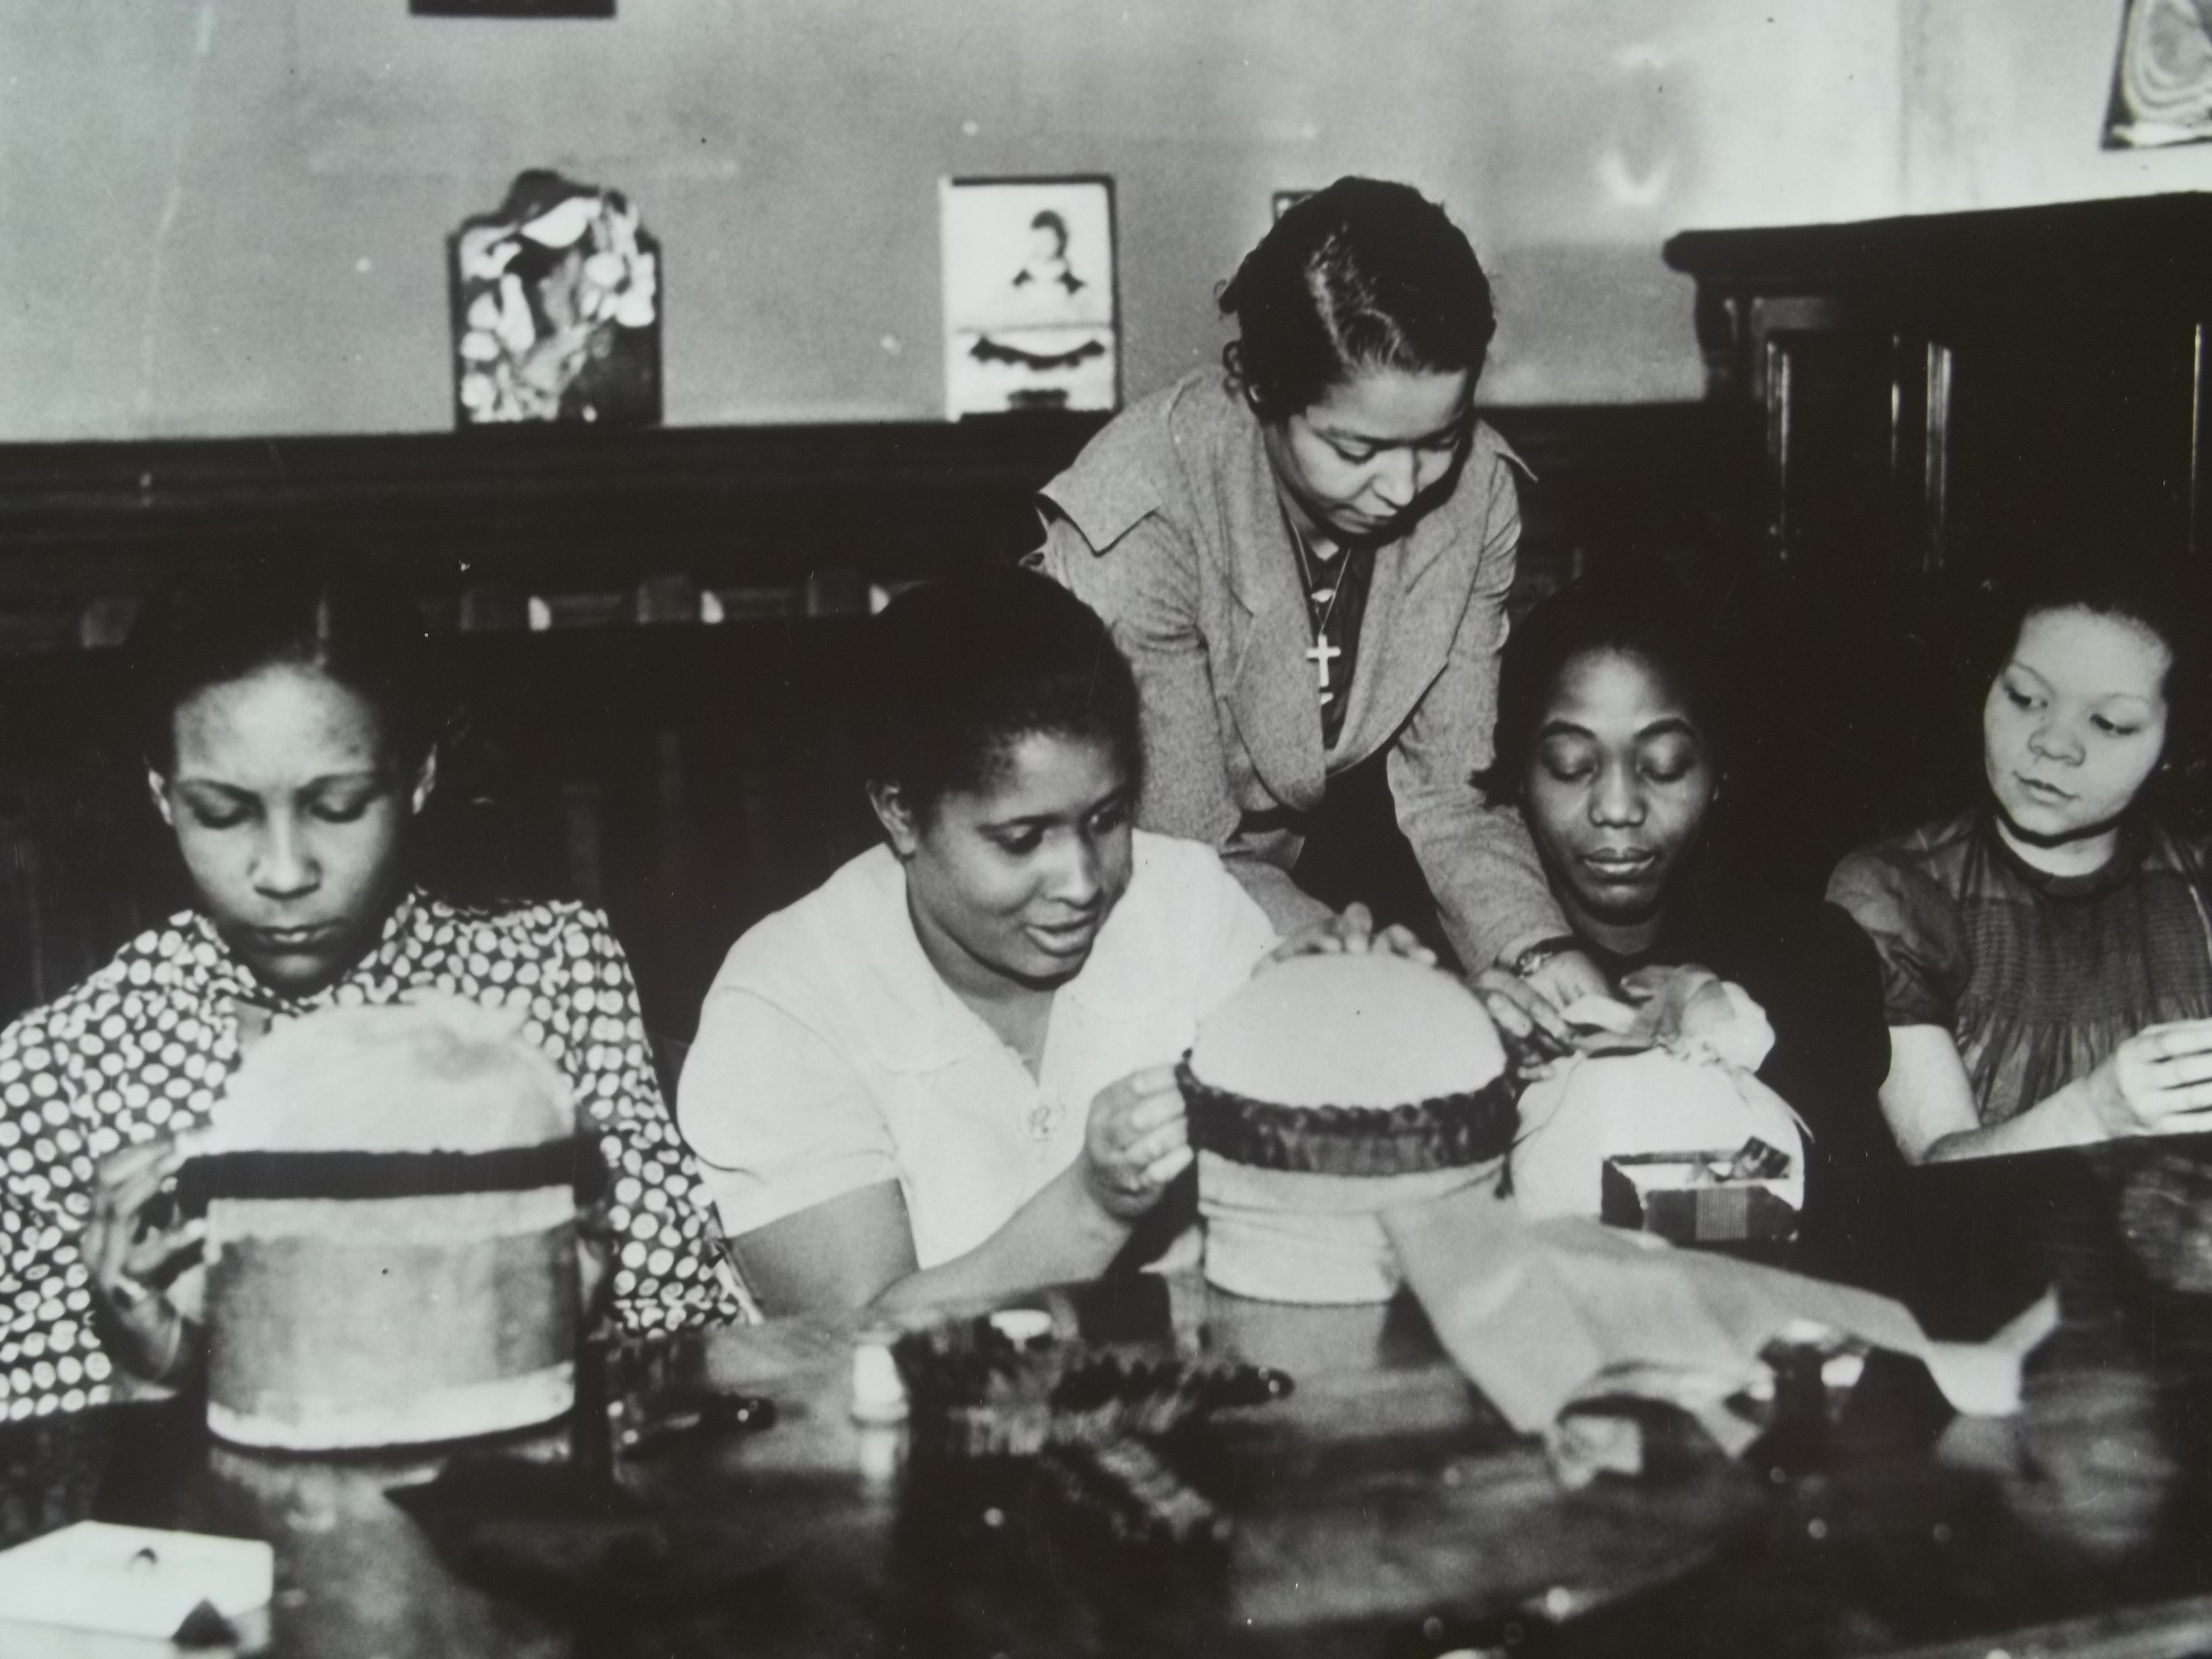 new deal black single women While there was still segregation in the united states during roosevelt's new deal programs, the program created 350,000 jobs for african-americans under the works progress administration program.